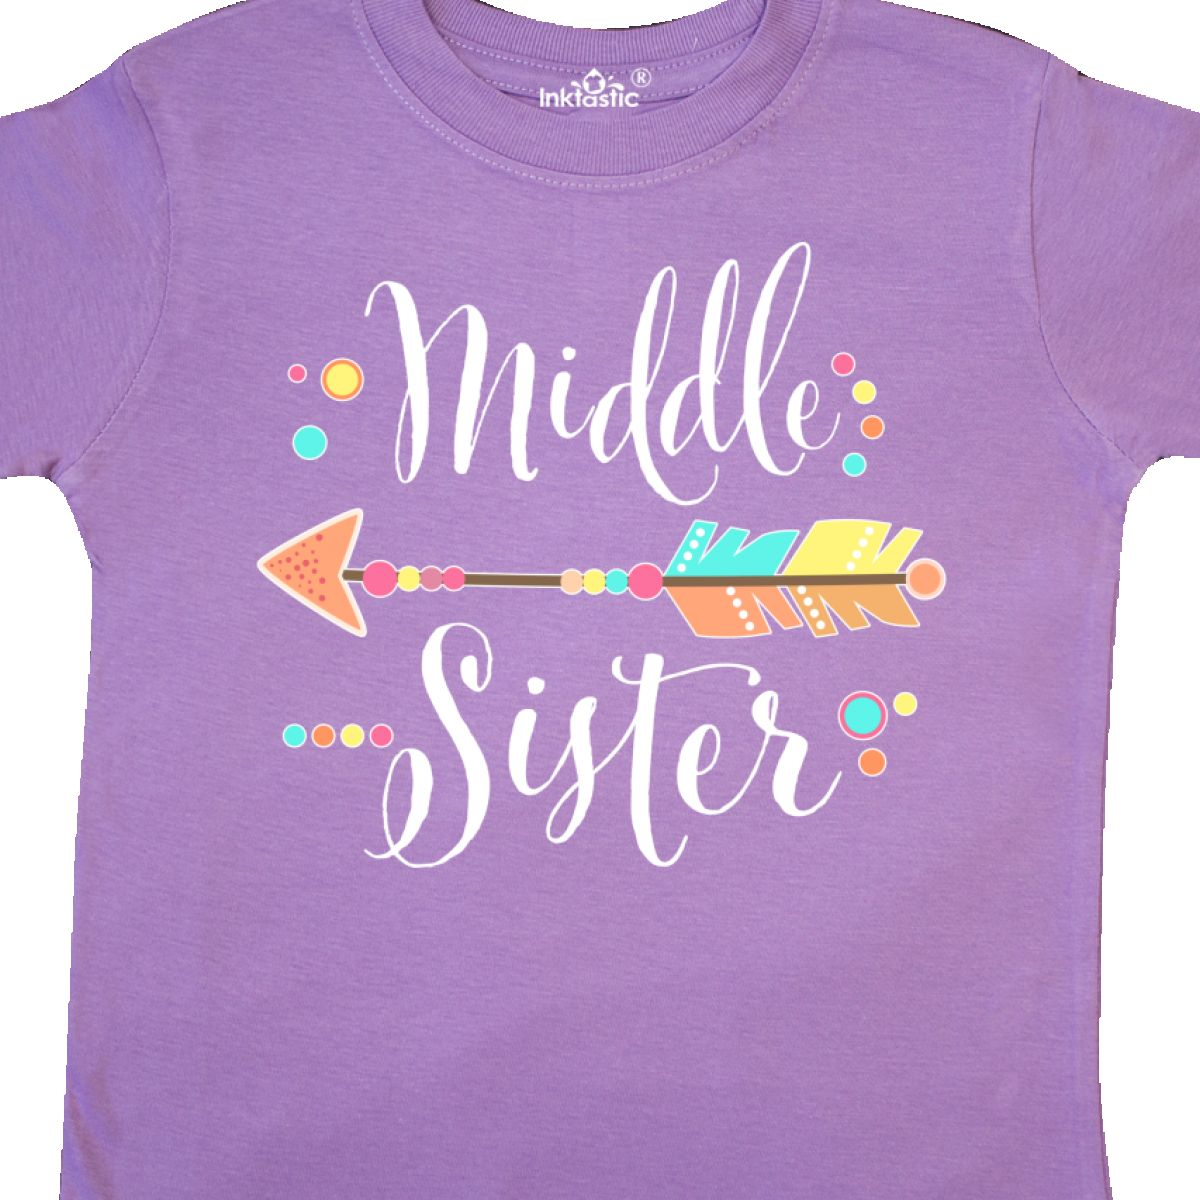 inktastic Little Sister with Bow and Arrow Toddler T-Shirt